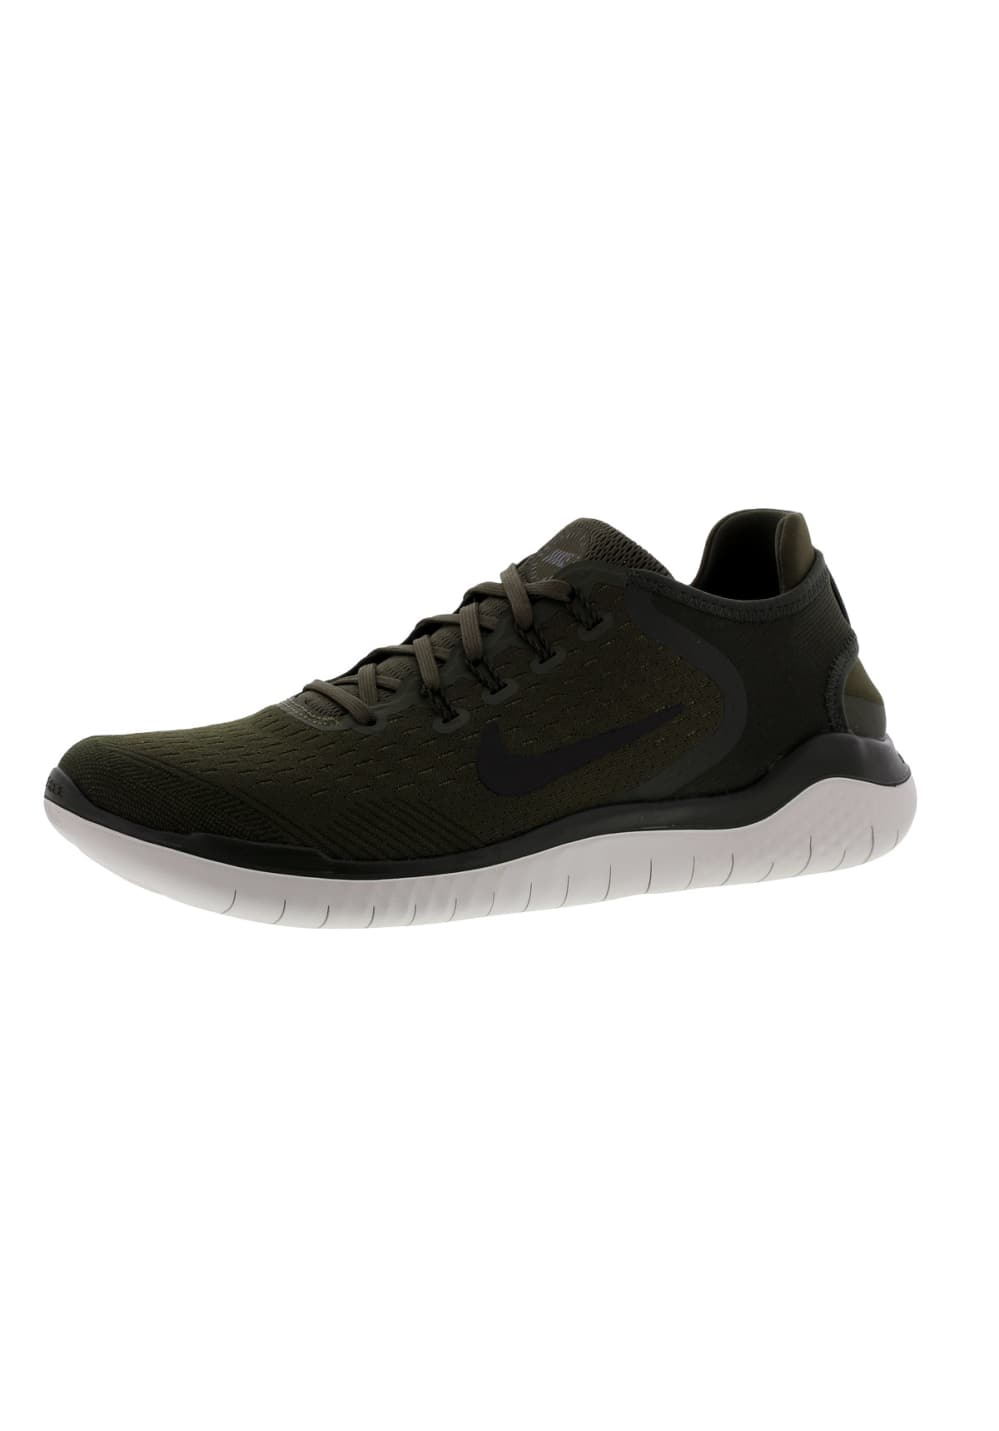 c445387a19ef Next. -60%. This product is currently out of stock. Nike. Free RN 2018 - Running  shoes for Men